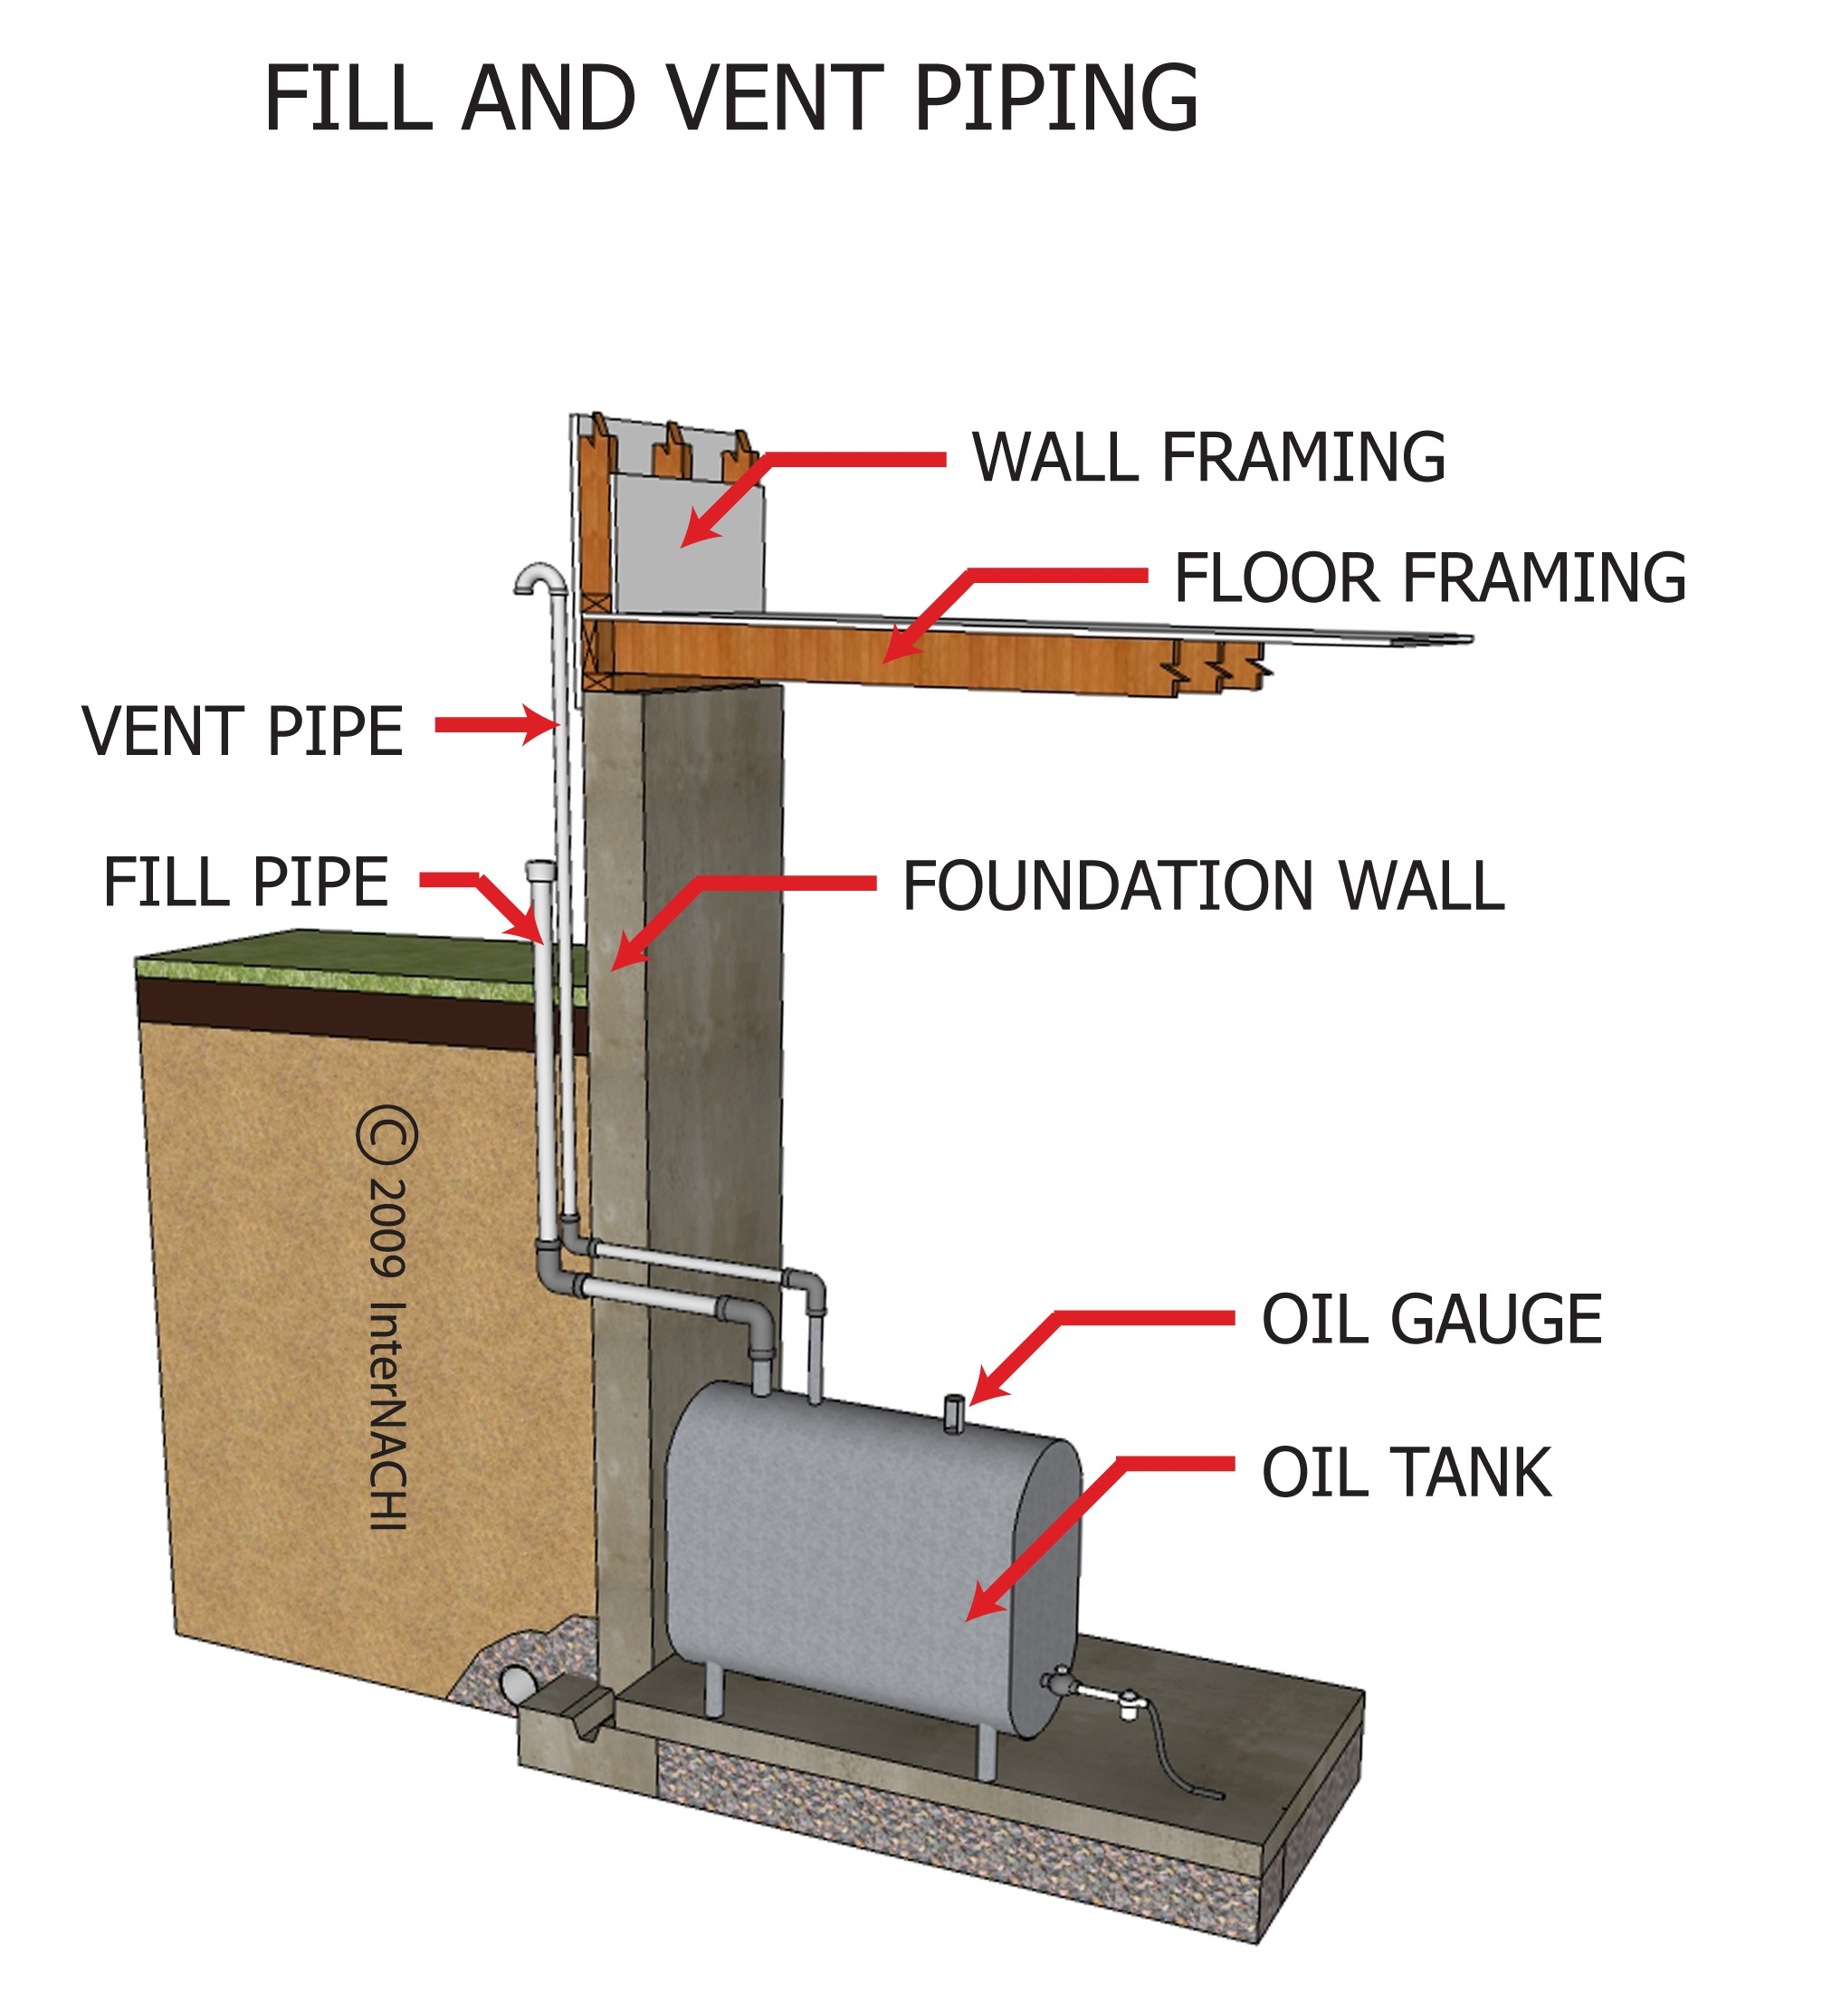 Fill and vent piping.